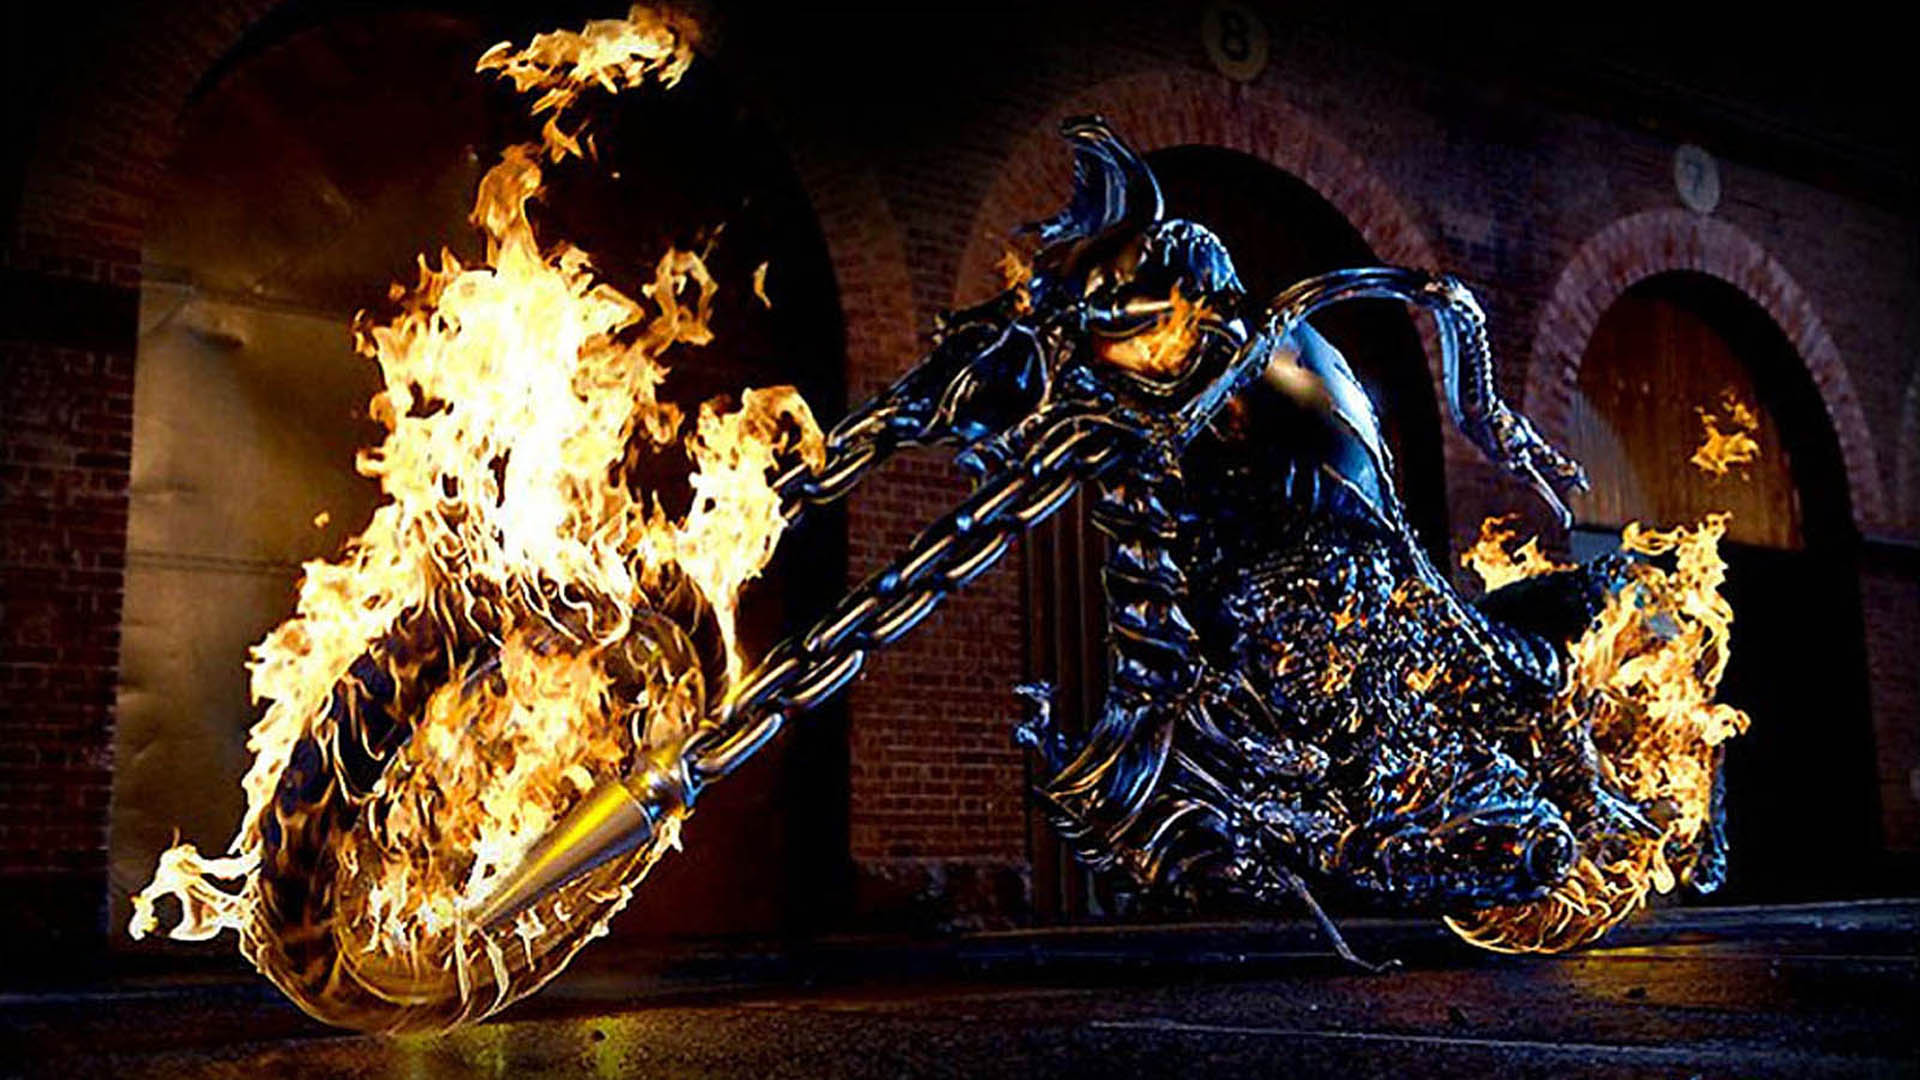 Ghost Rider Wallpaper 1920x1080 Wallpapers 1920x1080 Wallpapers 1920x1080